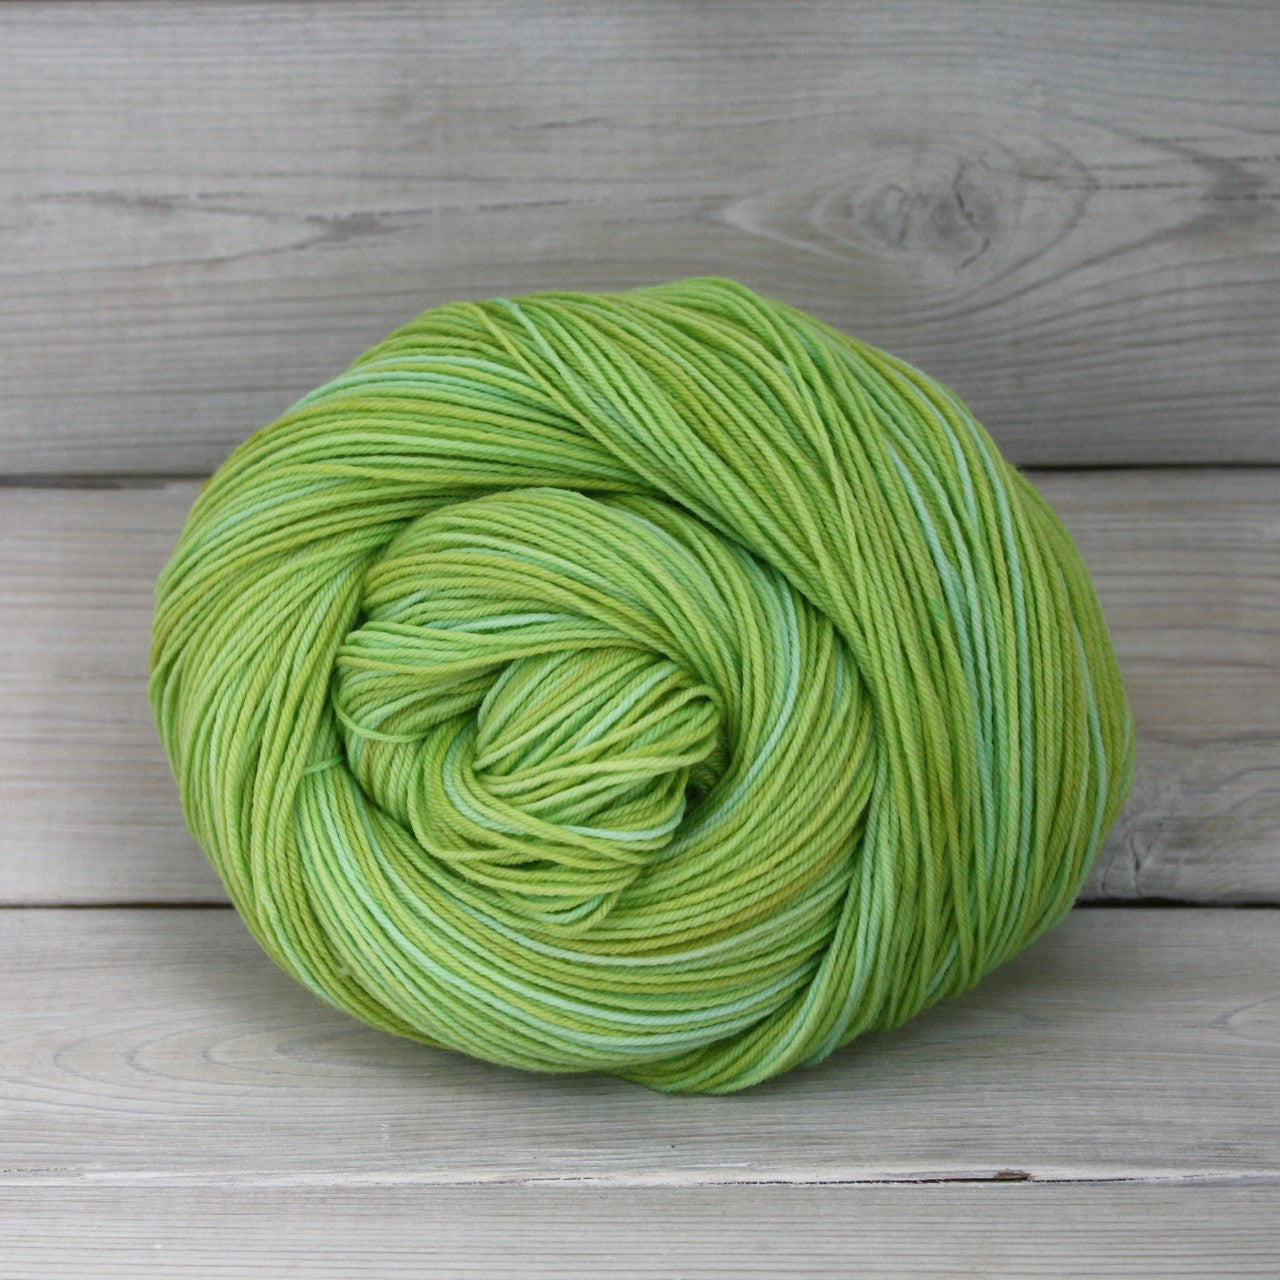 Athena Sock Yarn | Colorway: Bahama Village